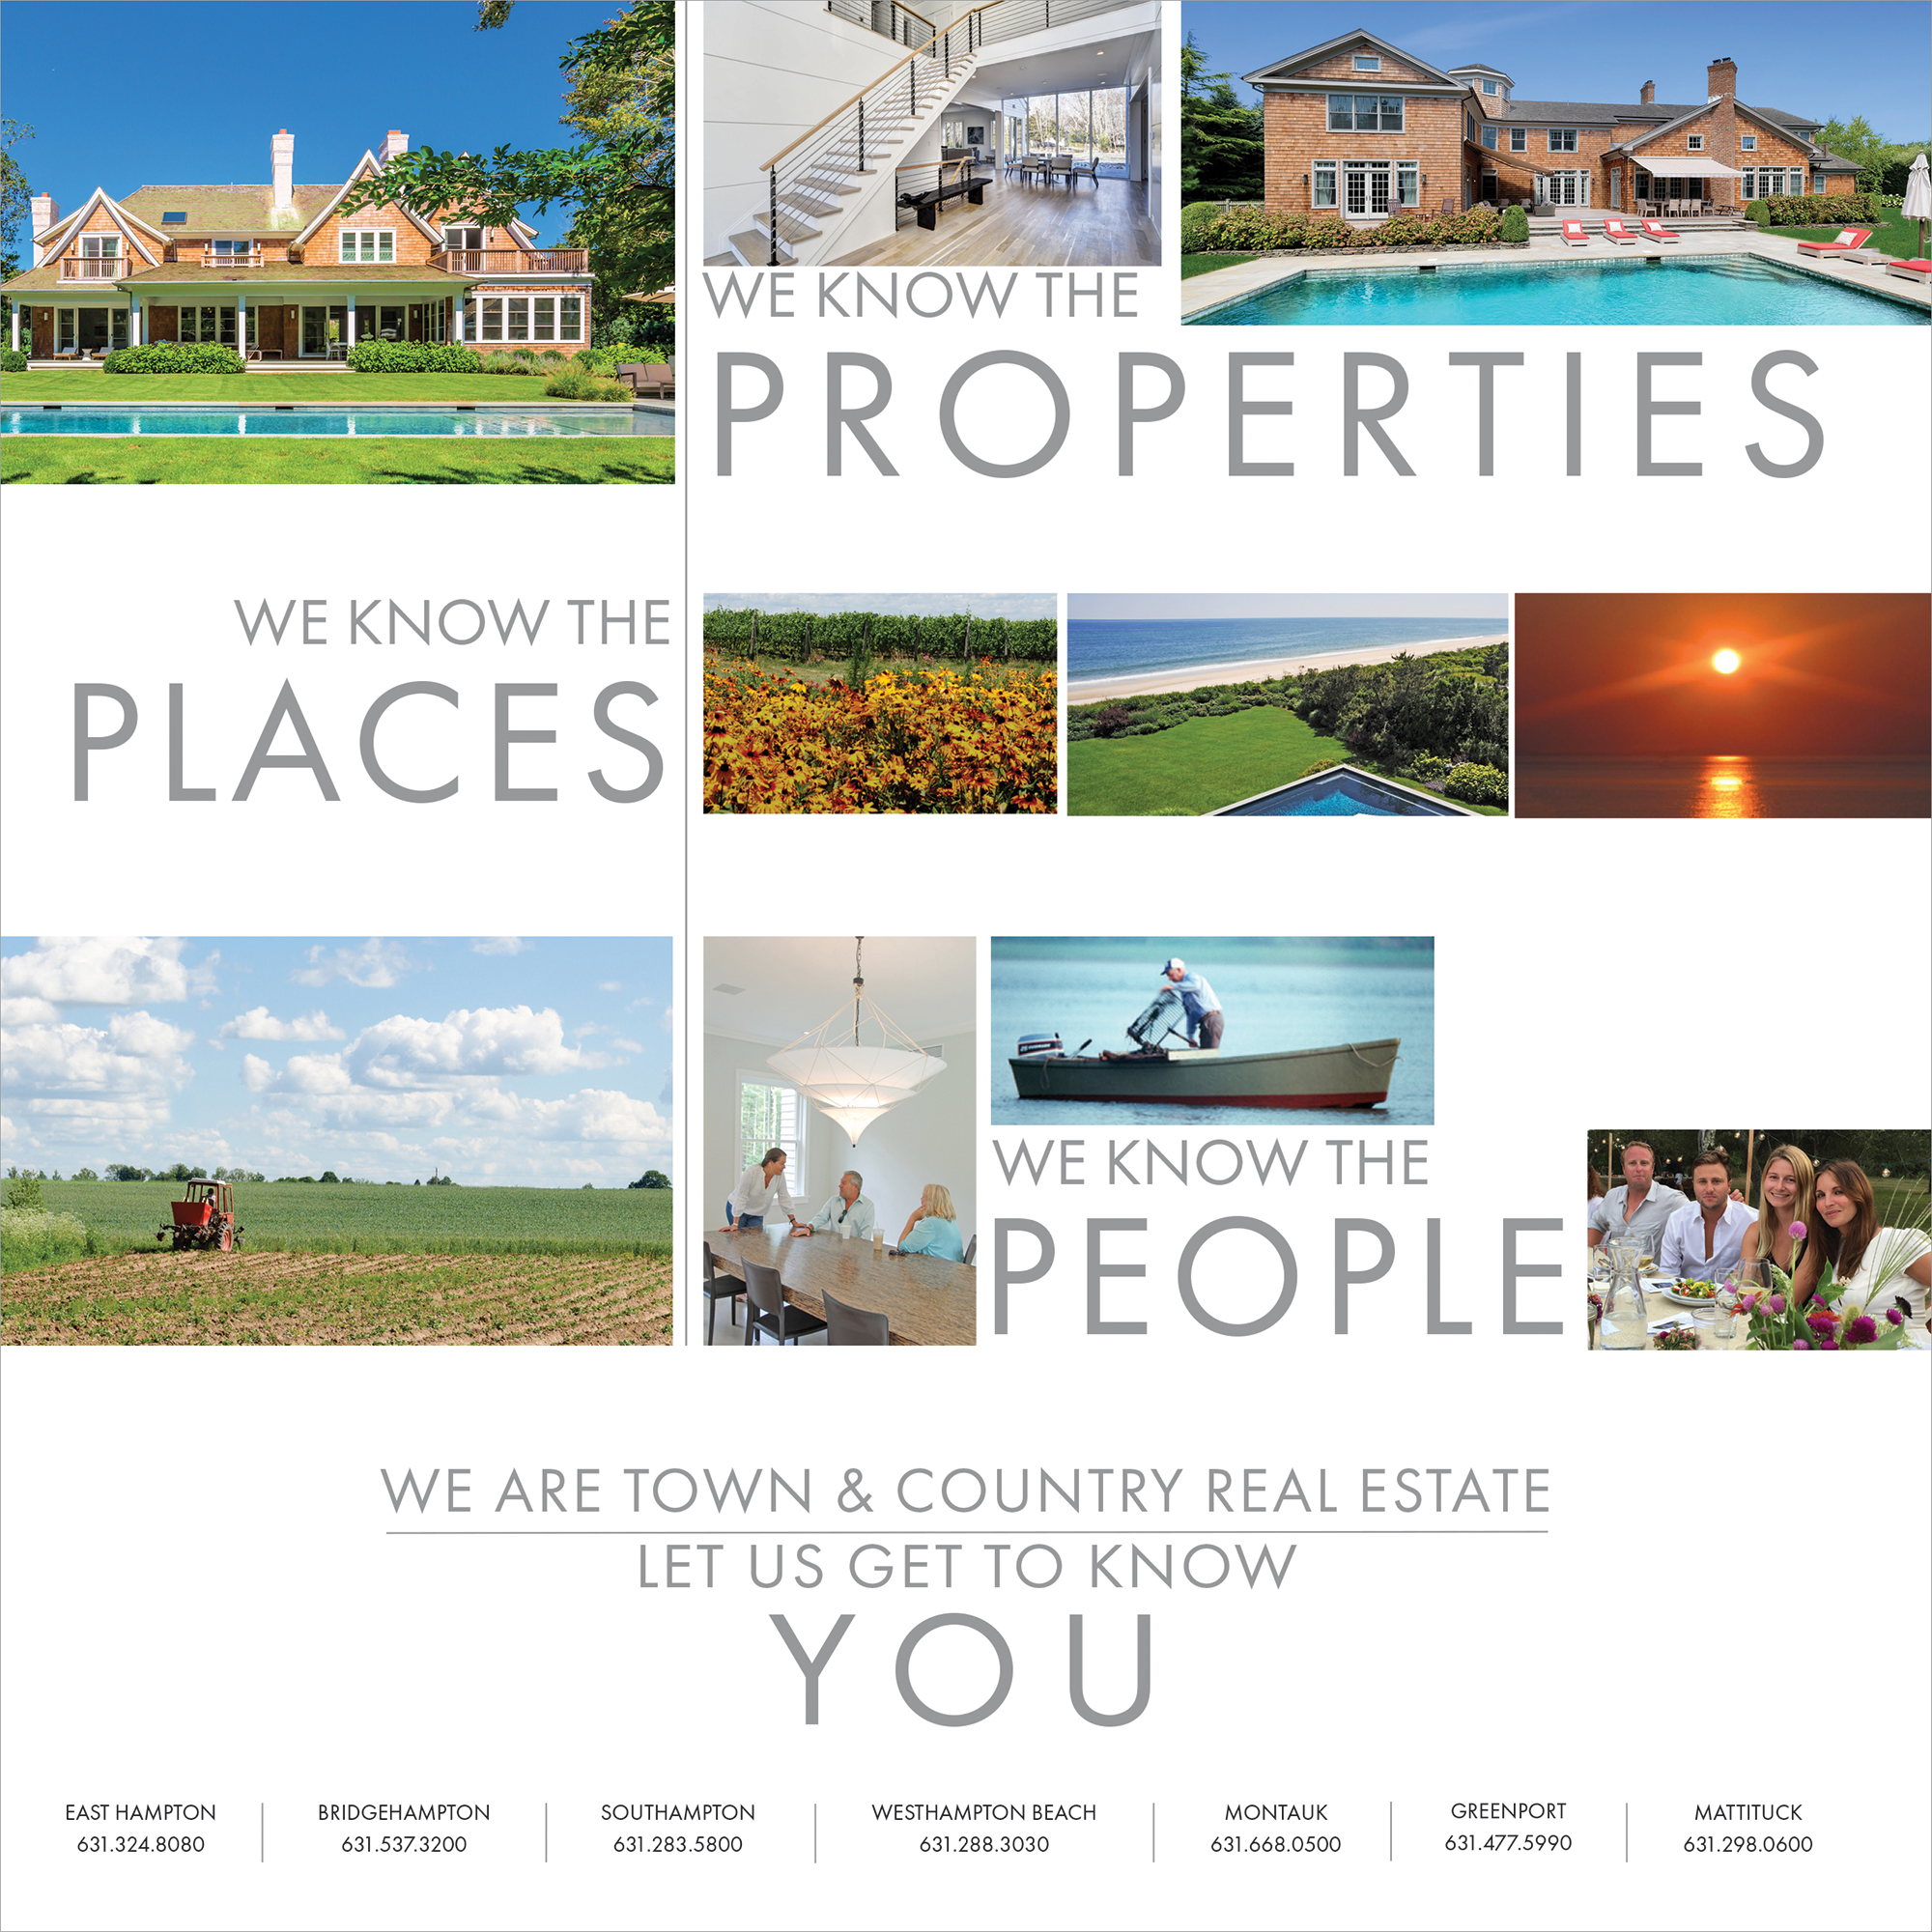 Town & Country Real Estate Branding Ads